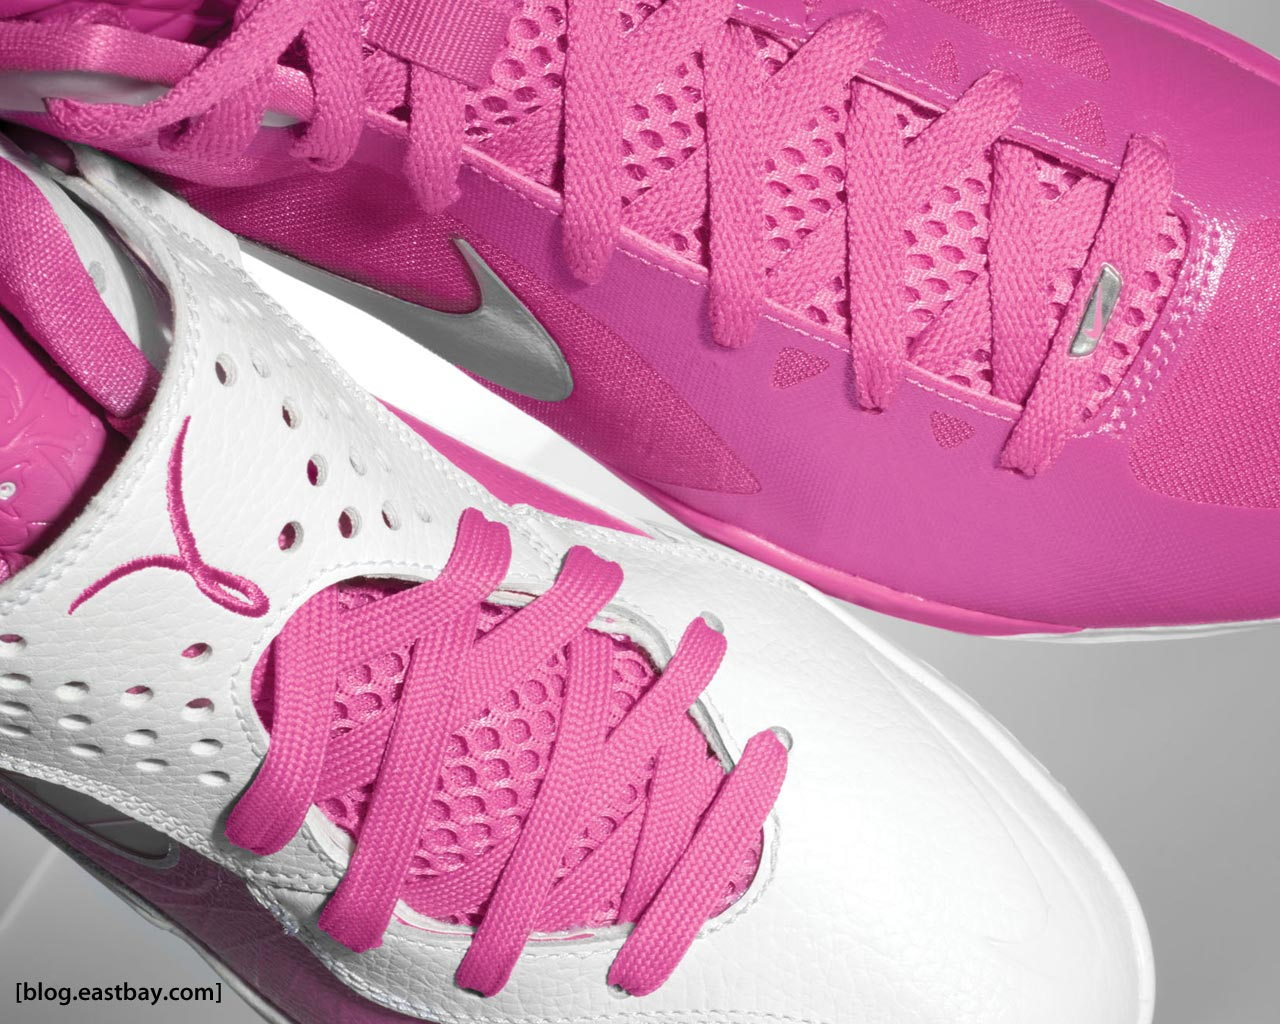 960fc510e75 Clothing stores online – Eastbay womens basketball shoes